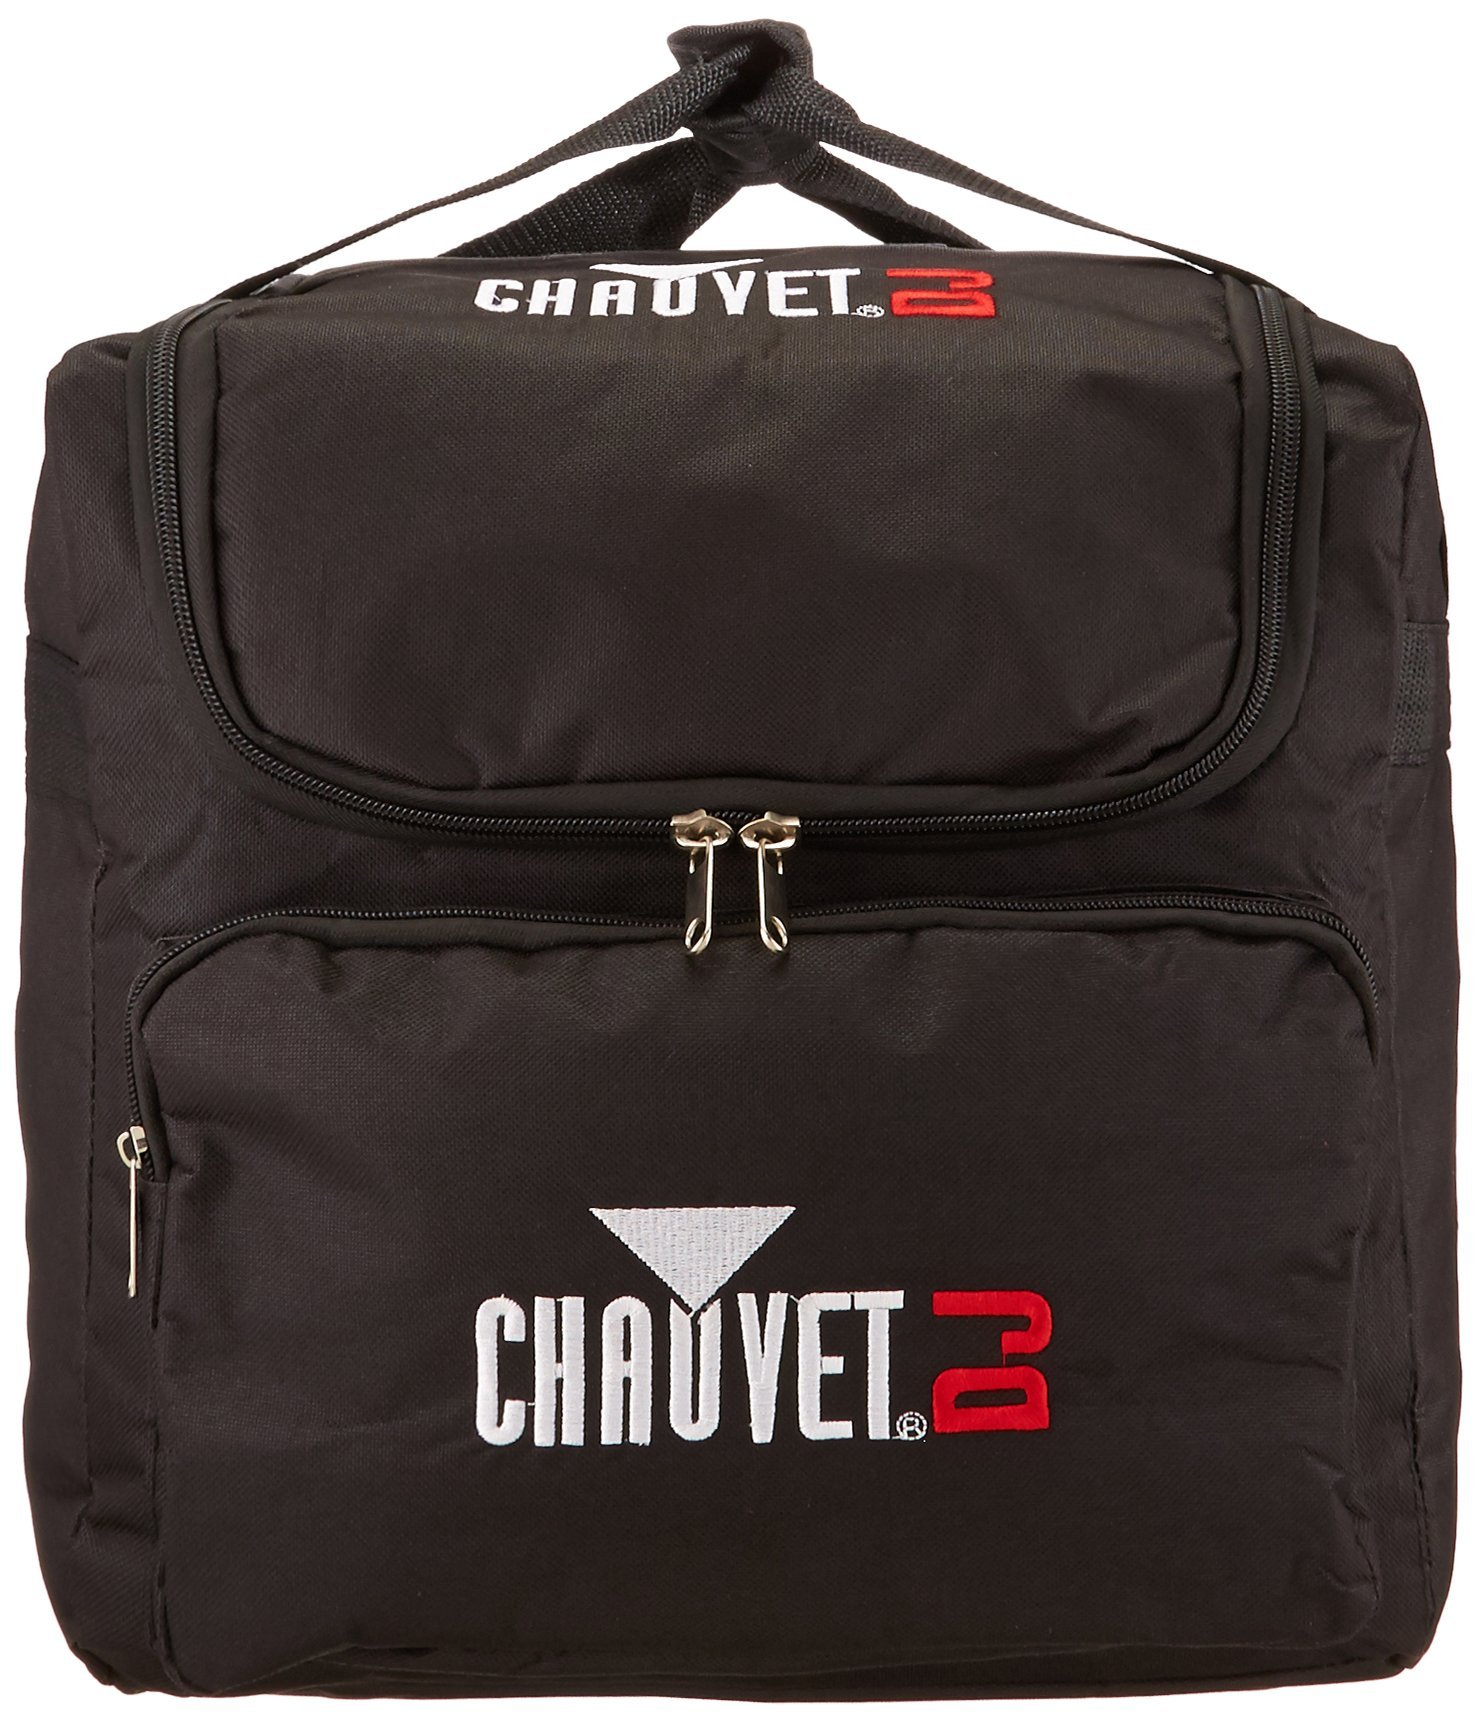 CHAUVET DJ CHS-40 VIP Travel/Gear Bag for DJ Lights, Cables, Clamps and Accessories by CHAUVET DJ